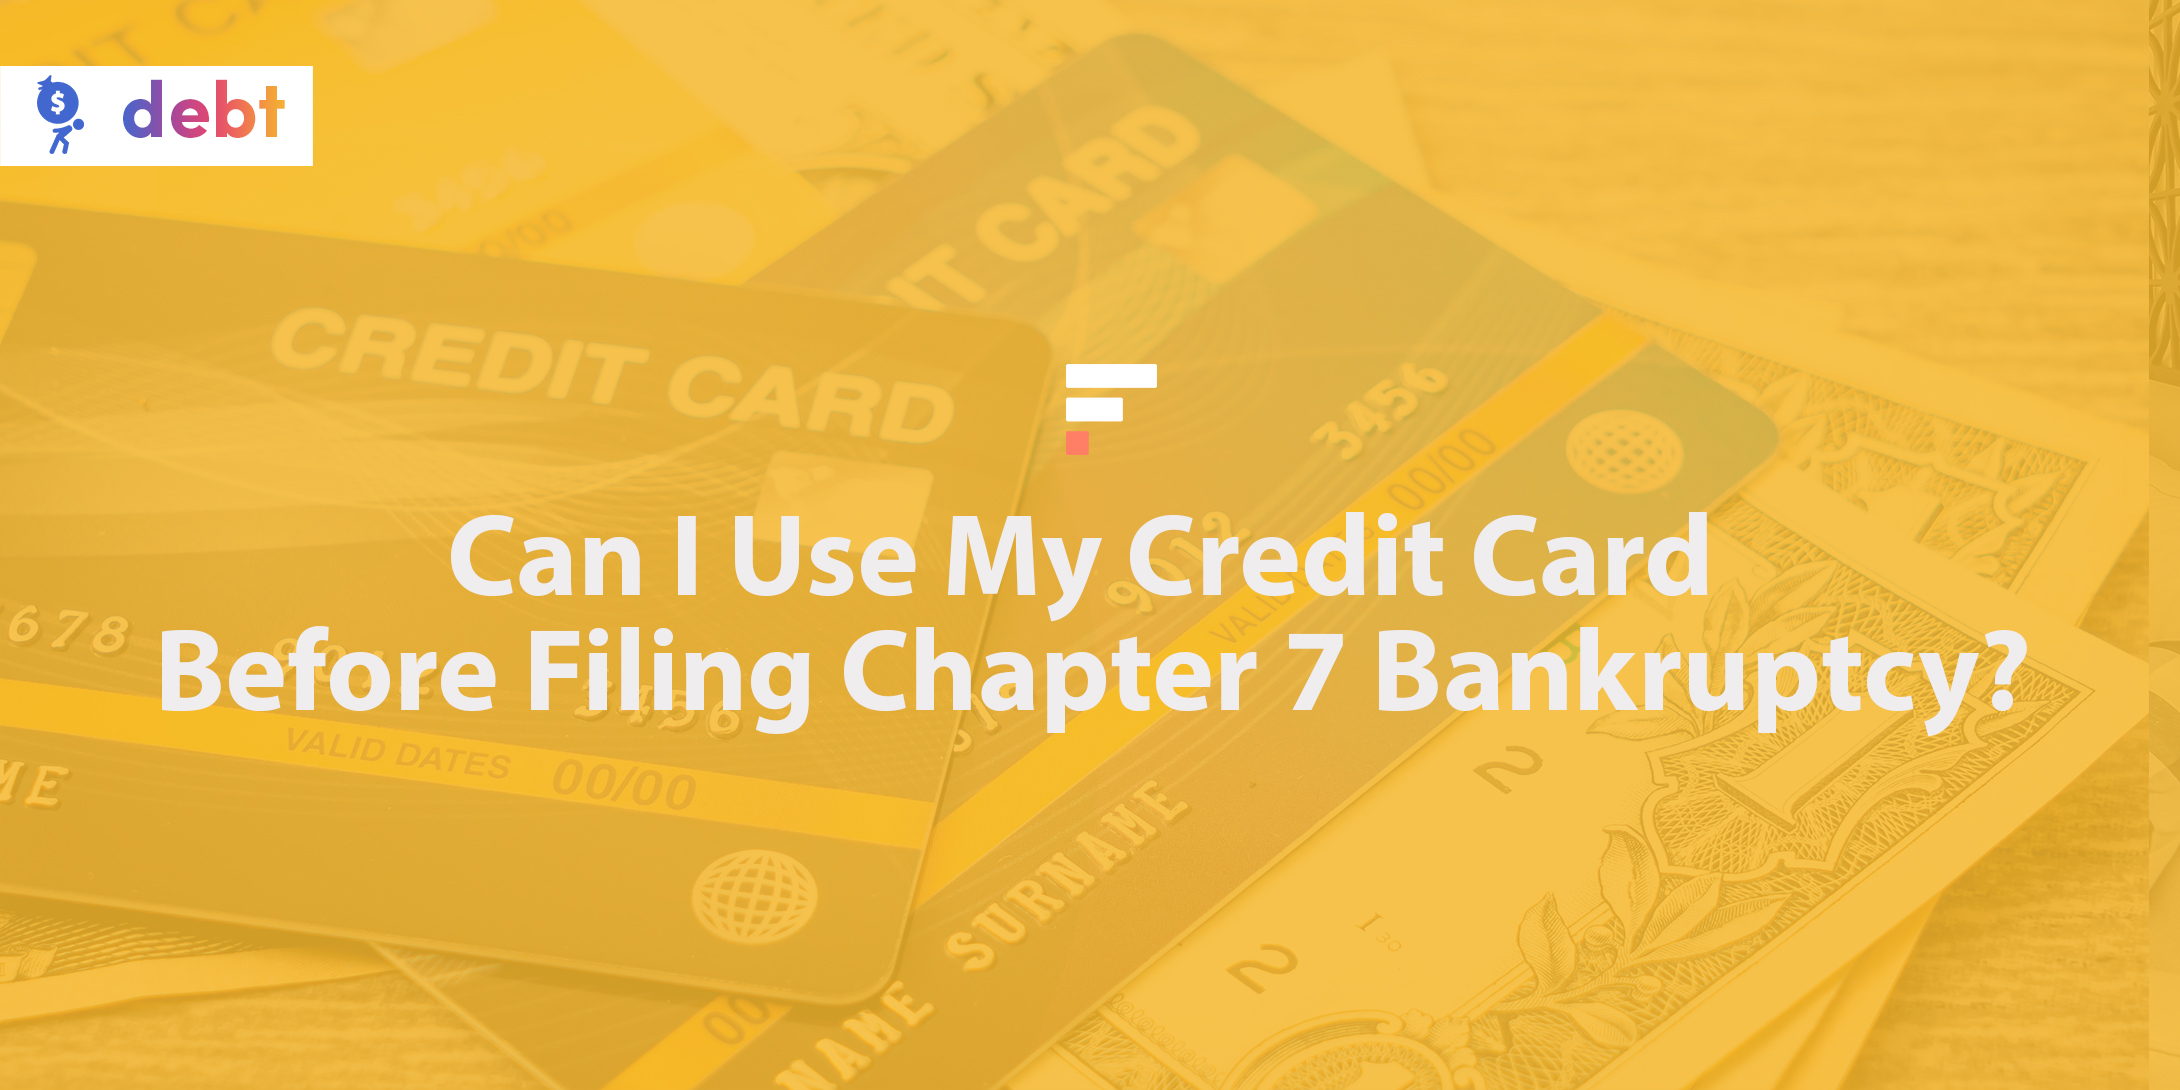 Can I use my credit card before filing Chapter 7 bankruptcy?